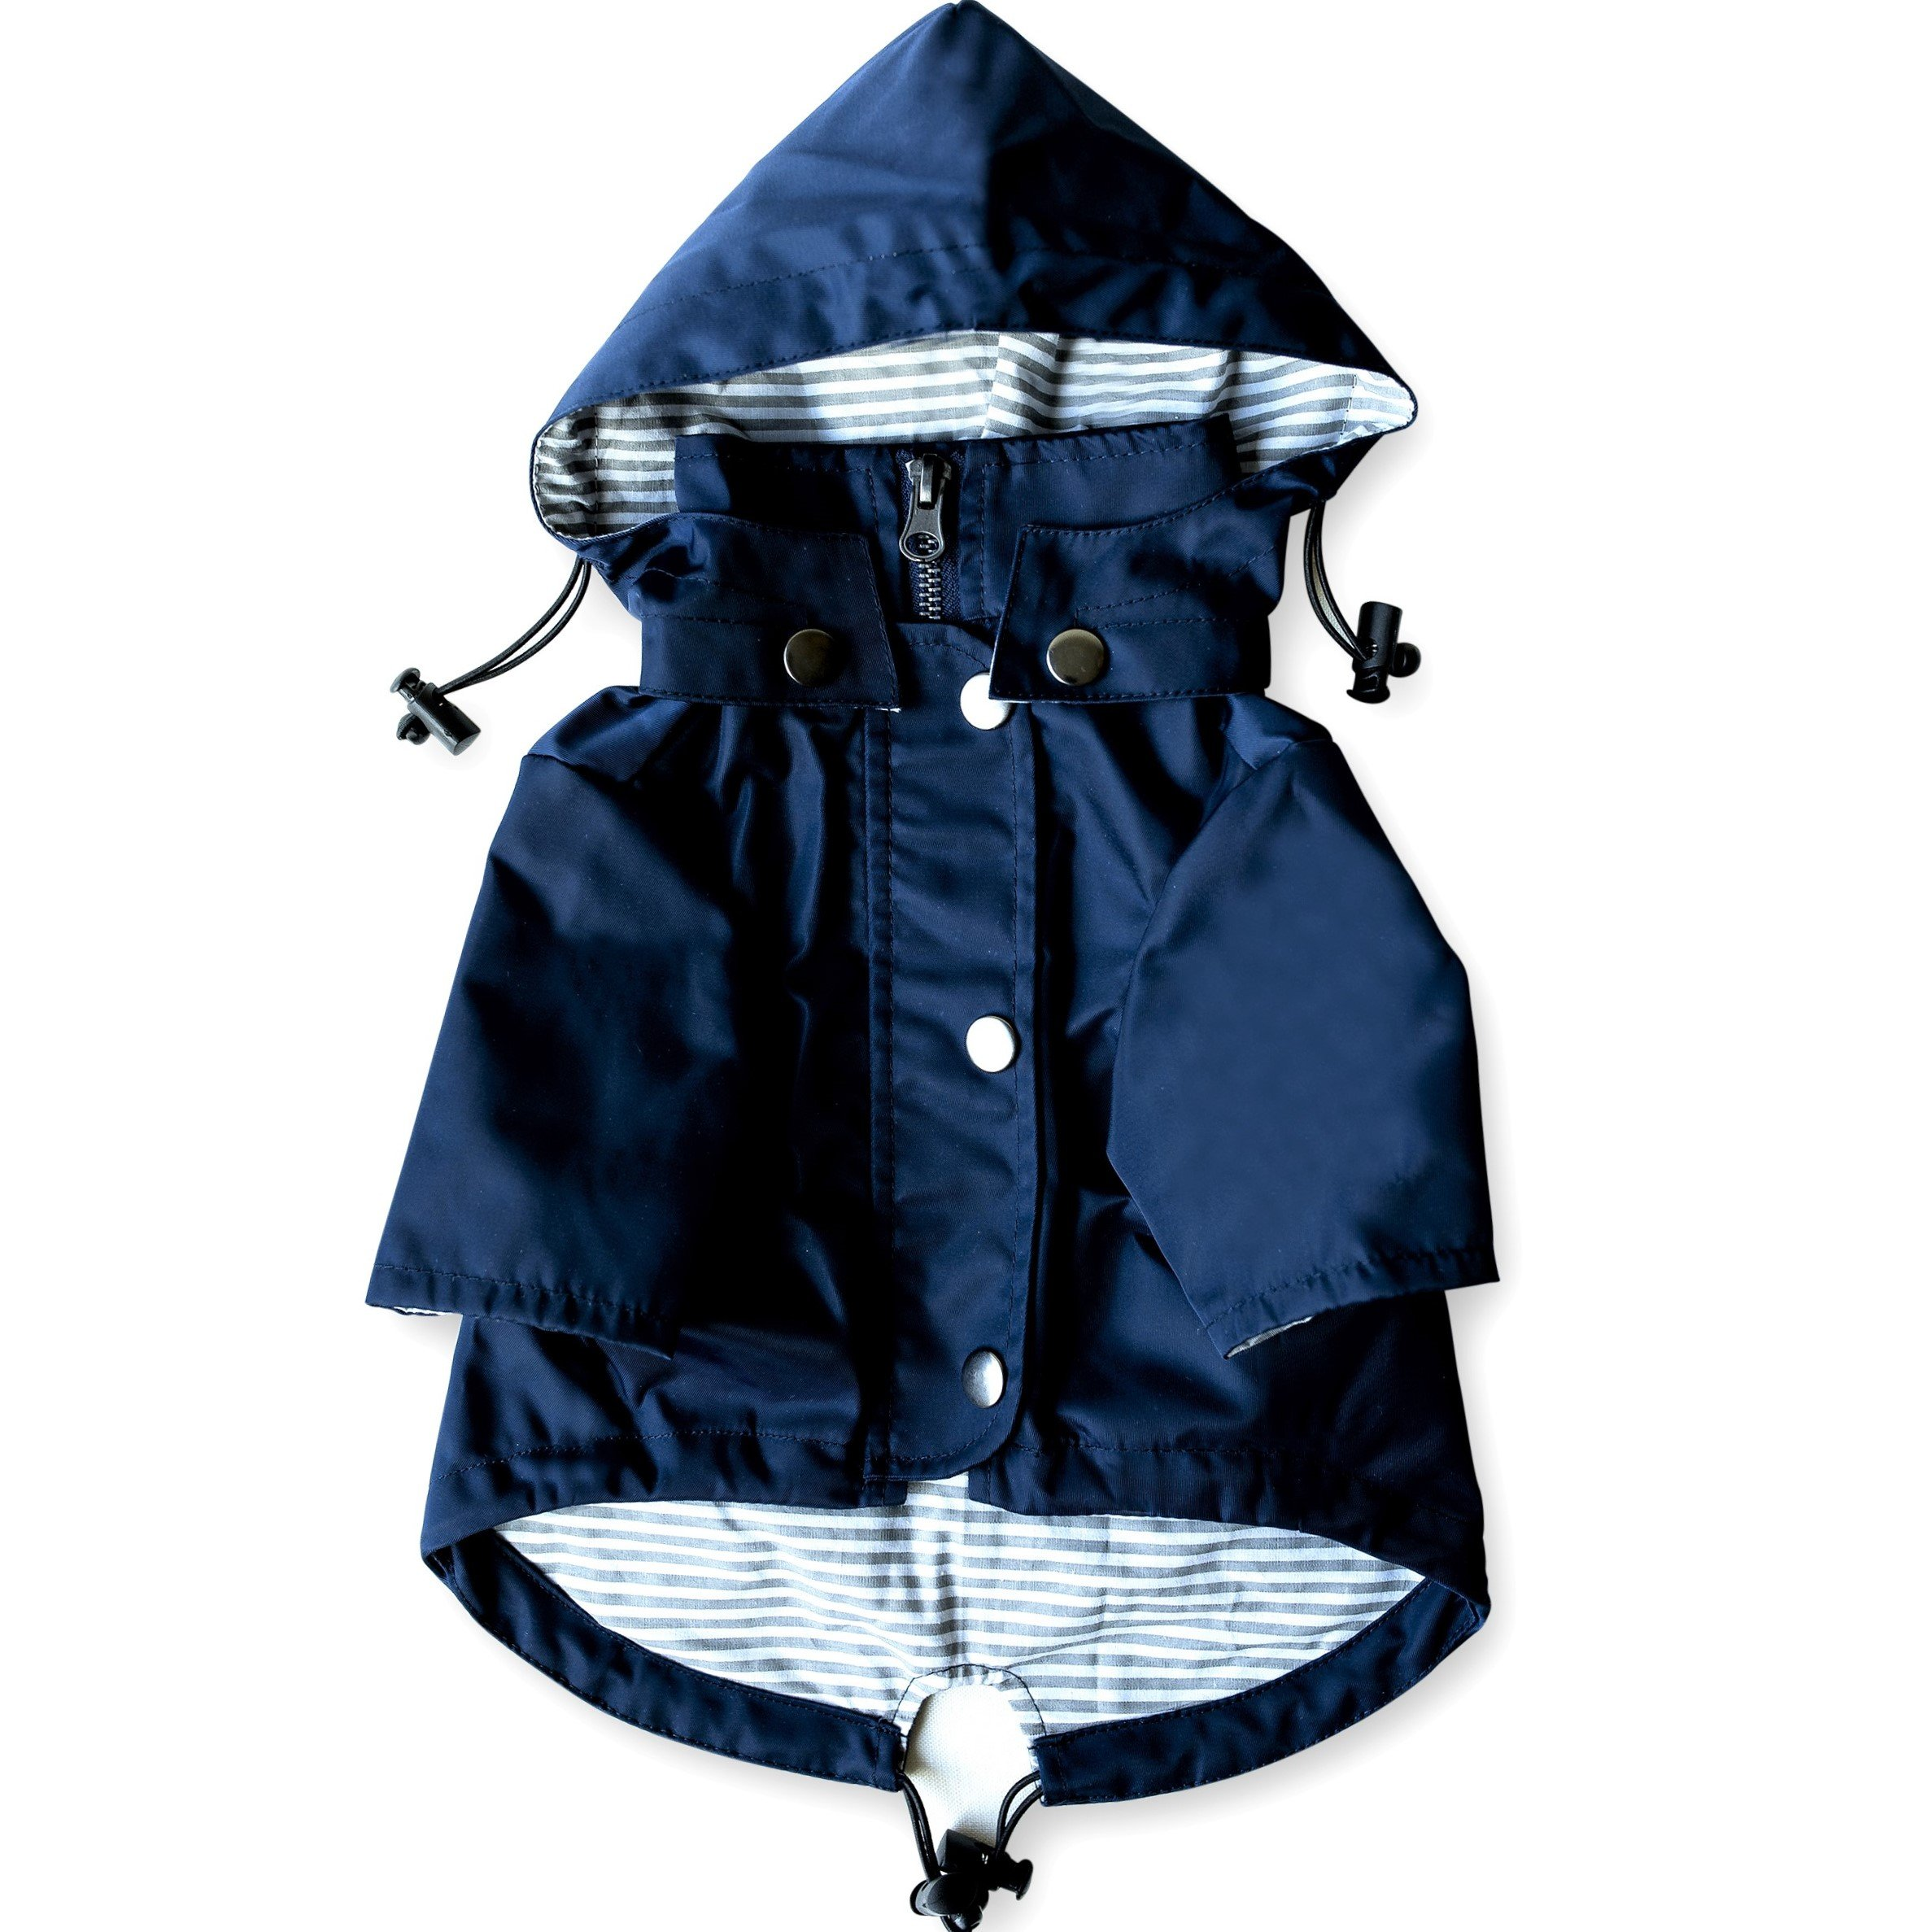 Navy Blue Zip Up Dog Raincoat with Reflective Buttons, Pockets, Rain/Water Resistant, Adjustable Drawstring, Removable Hood - Size XS to XXL Available - Stylish Premium Dog Raincoats by Ellie (M)